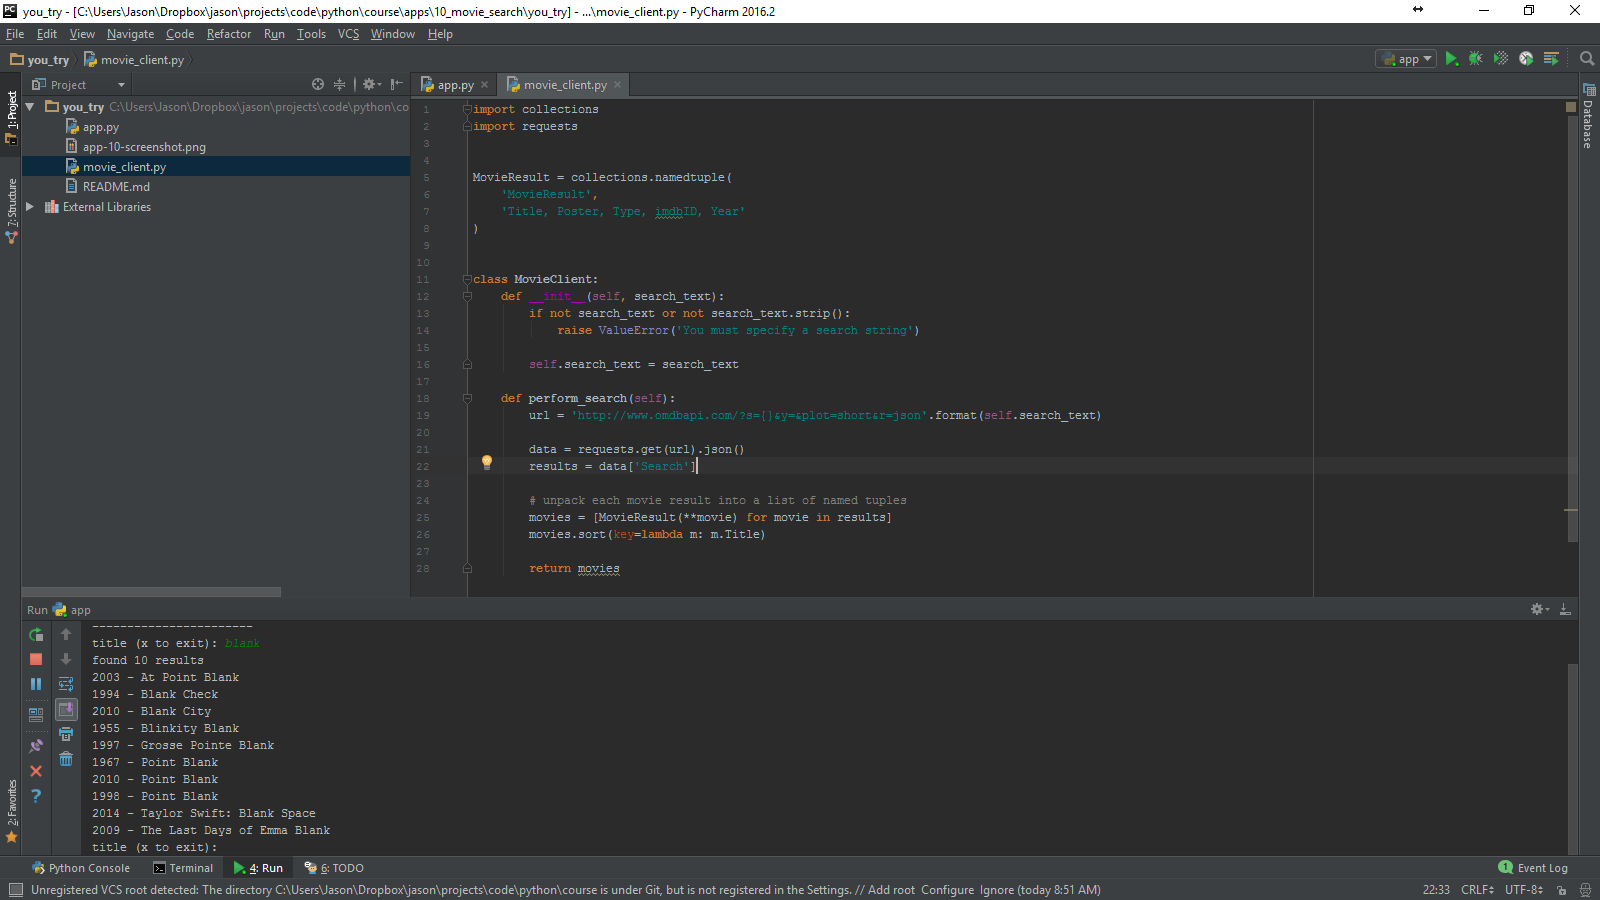 Pycharm screenshot